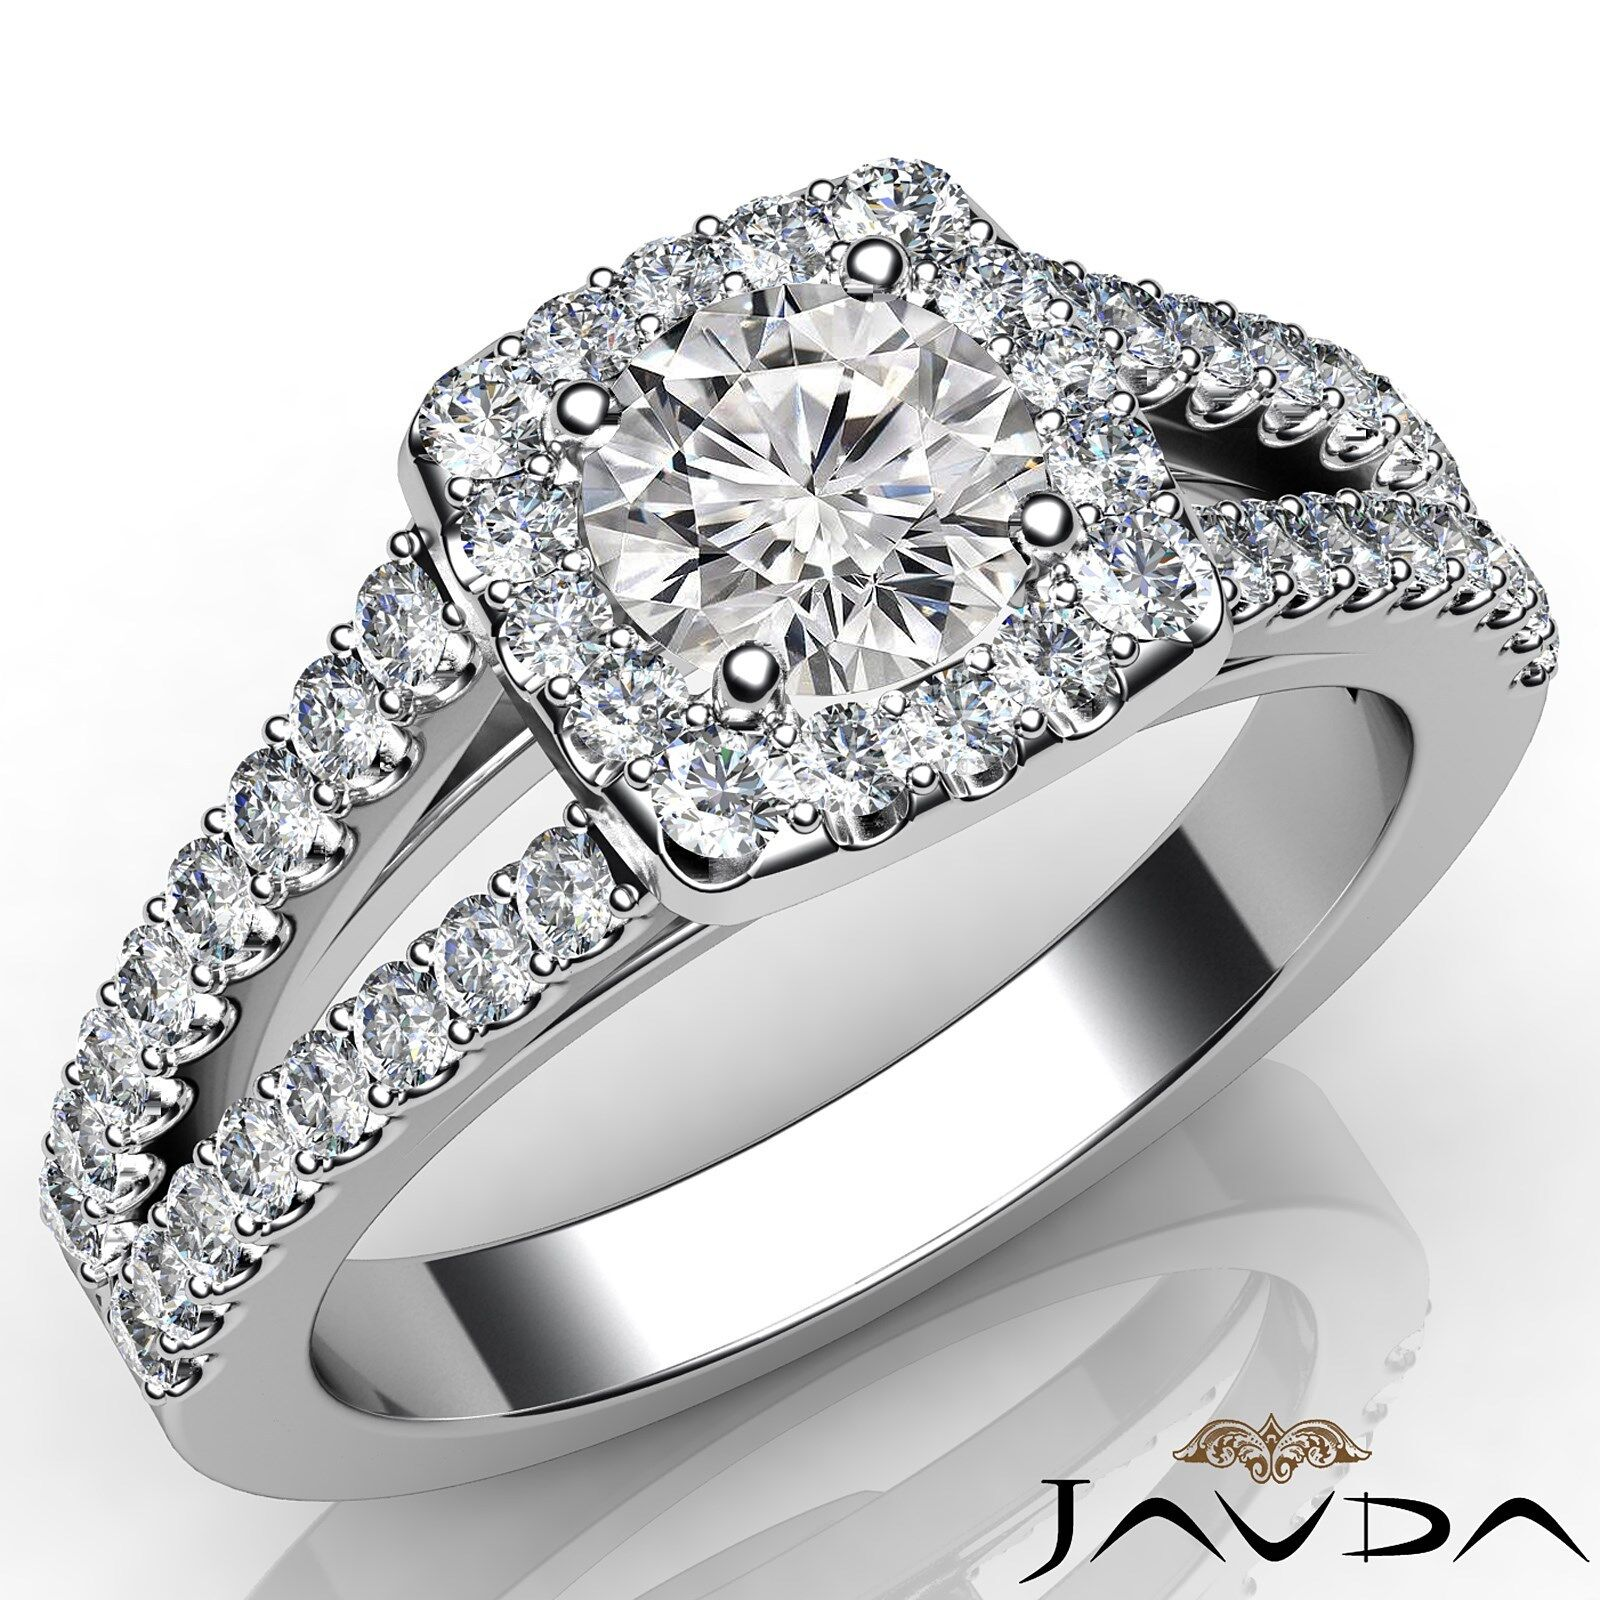 1.46 ctw. Round Cut Diamond Engagement GIA F VS2 14k White Gold Women's Ring